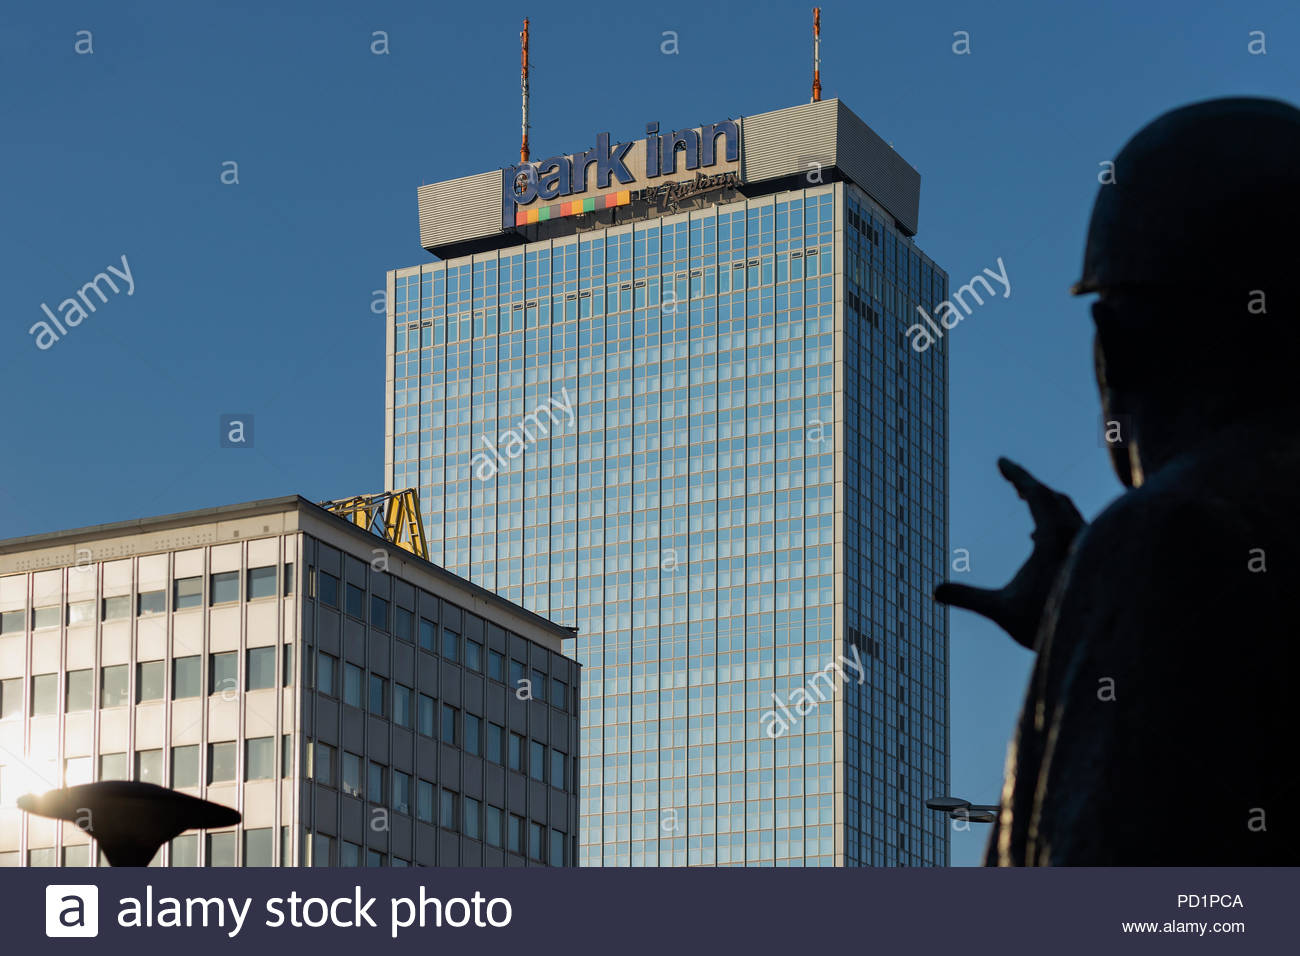 Hotel Park Inn in Alexanderplatz, center of Berlin. Shot on a sunny day under blue sky and behind a statue of a man rising  his and to the sky - Stock Image